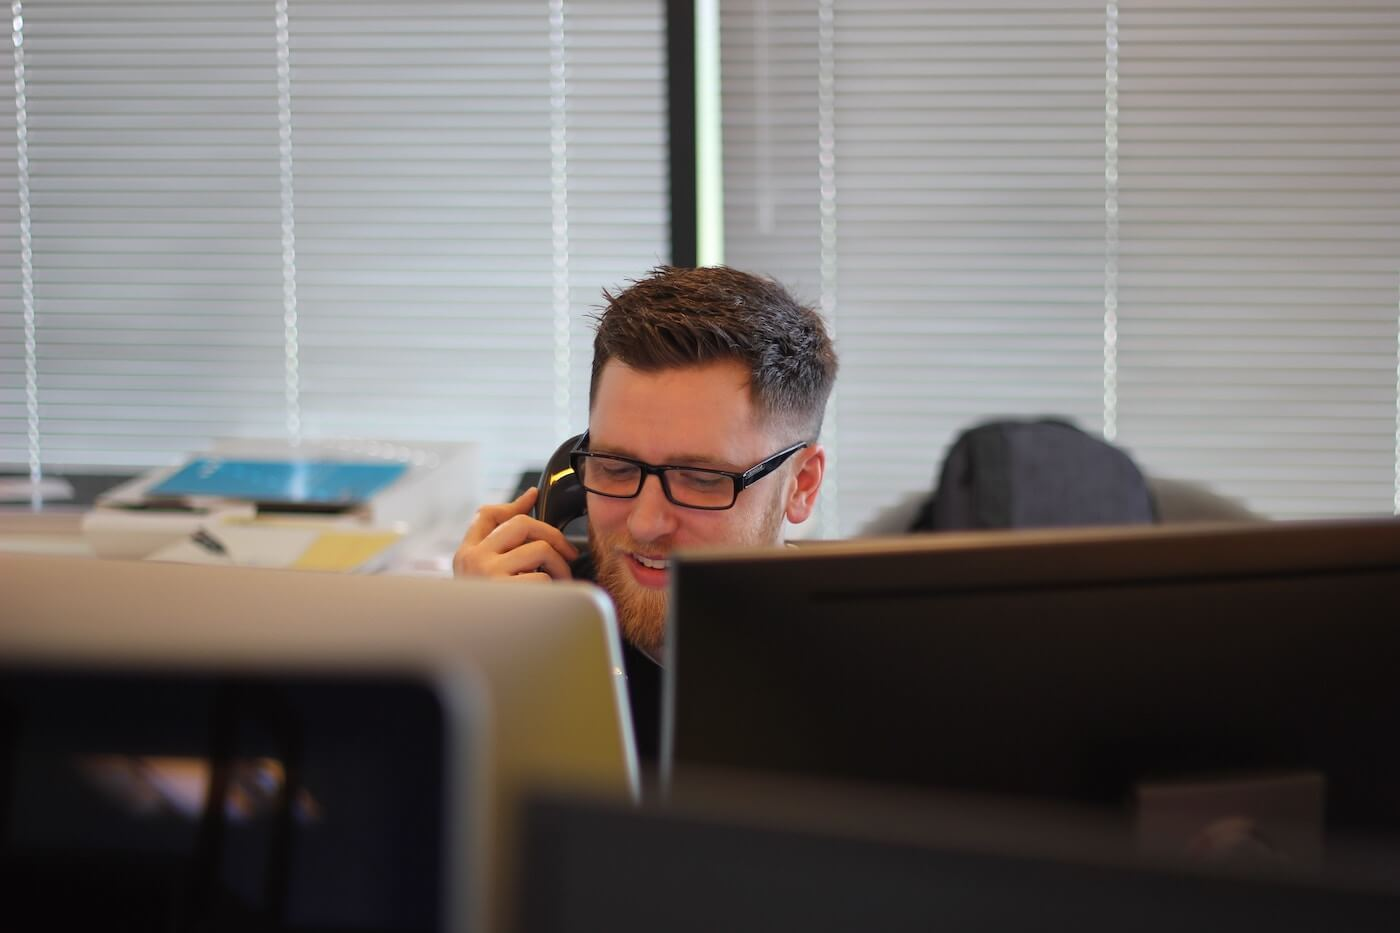 man sitting at a computer taking a phone call